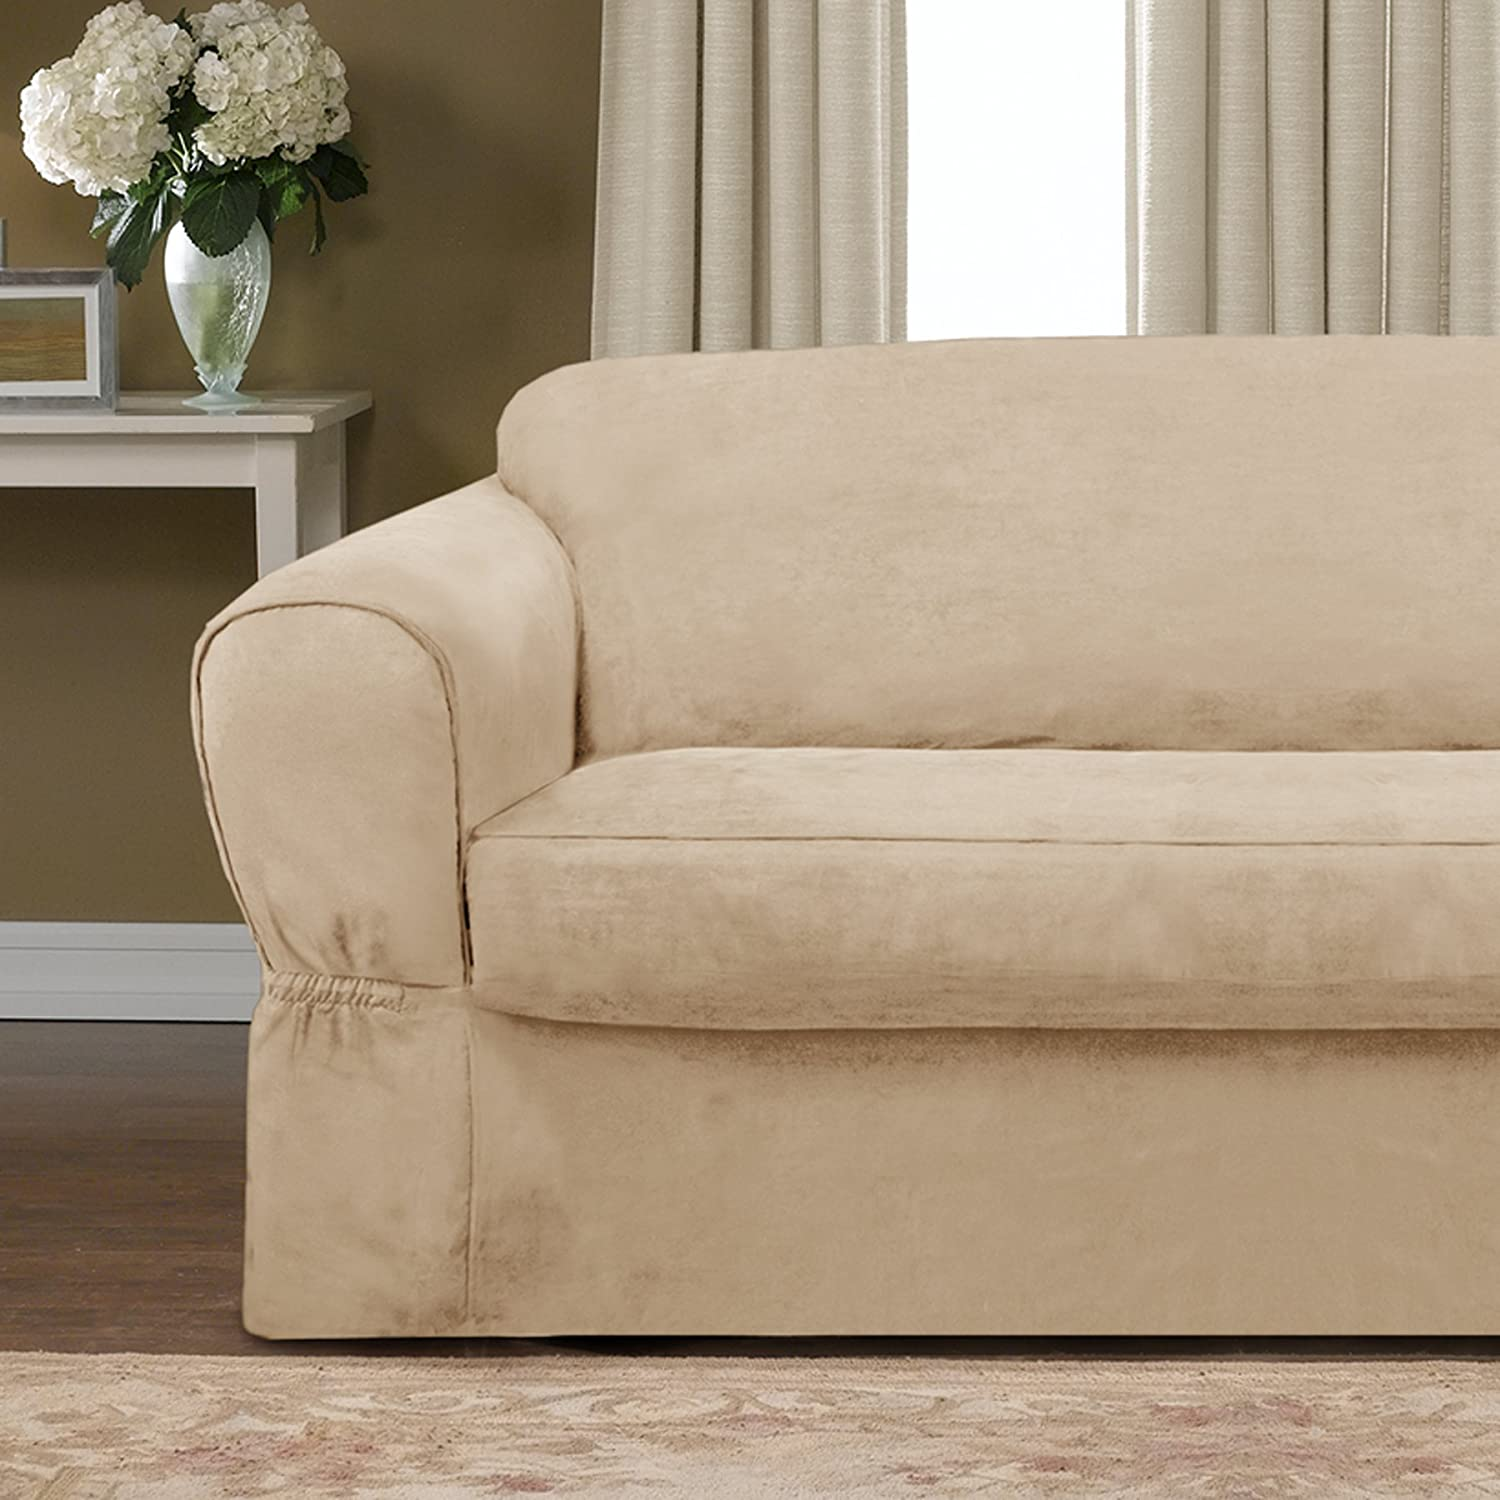 Amazon Maytex Piped Suede 2 Piece Slipcover Loveseat Tan